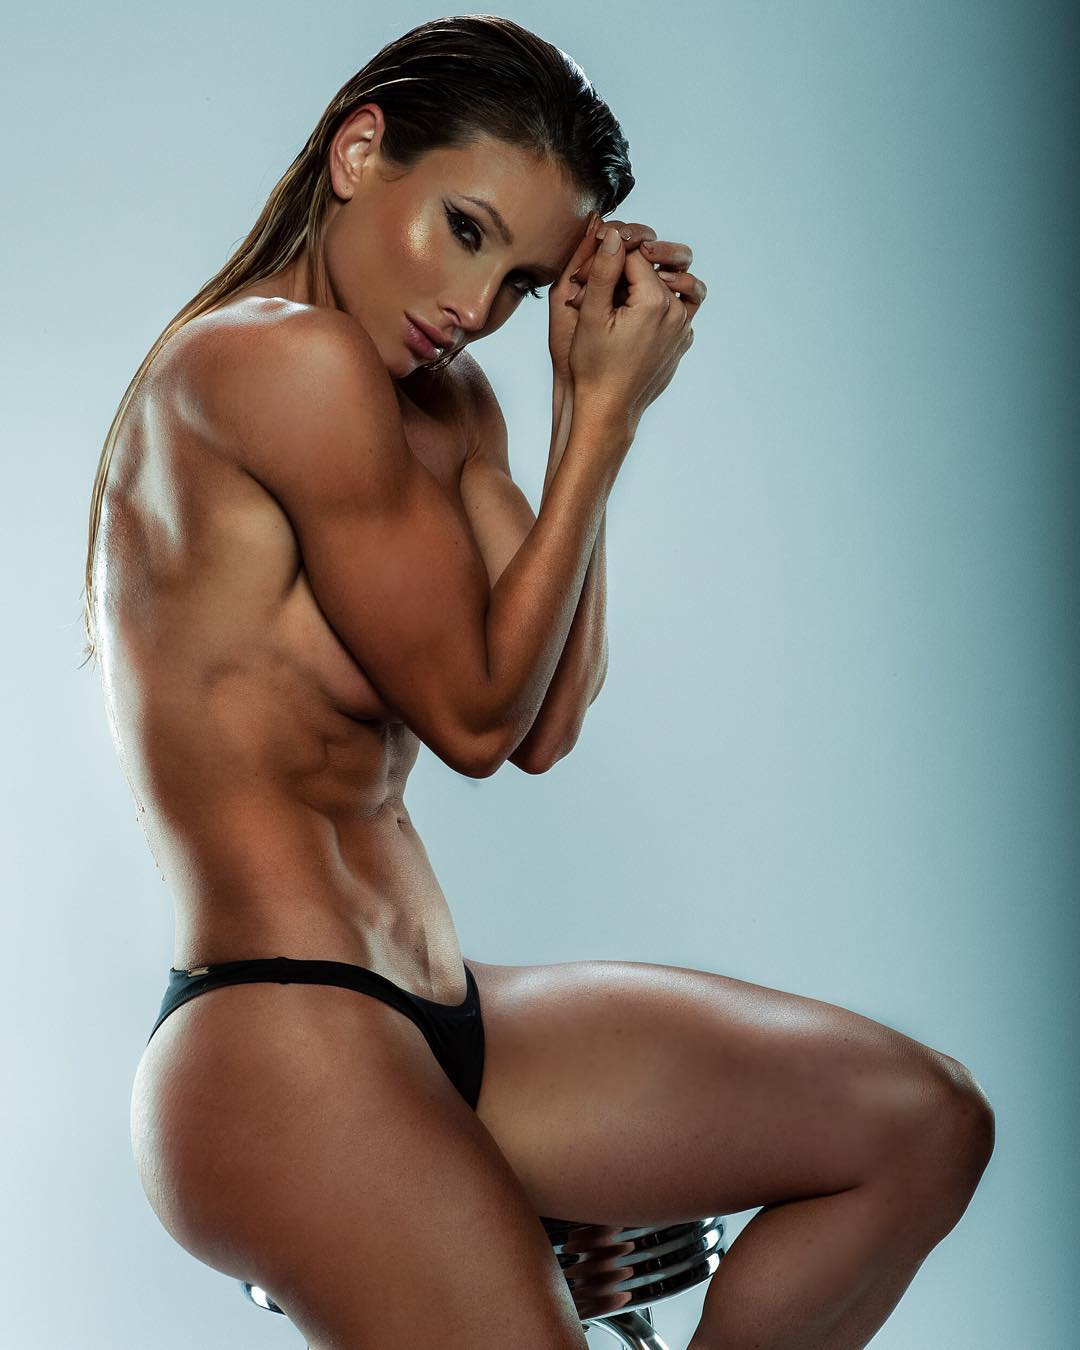 Remarkable, amusing paige hathaway nude that interfere